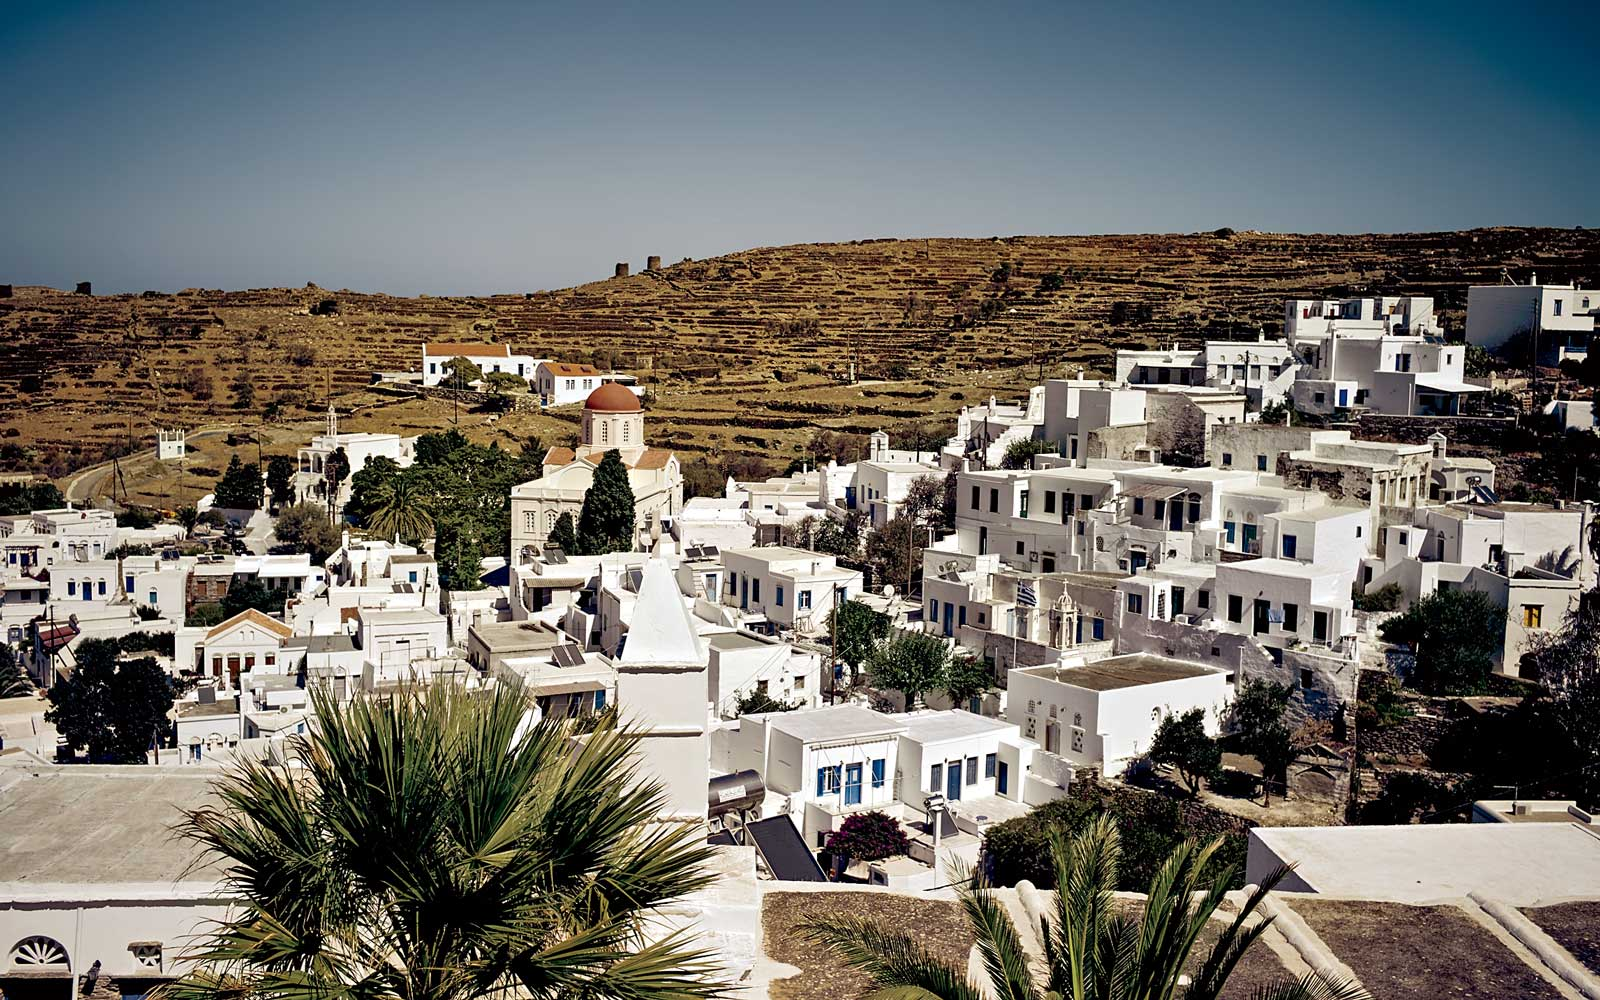 Greece's Tínos Is Home to More Than 700 Churches